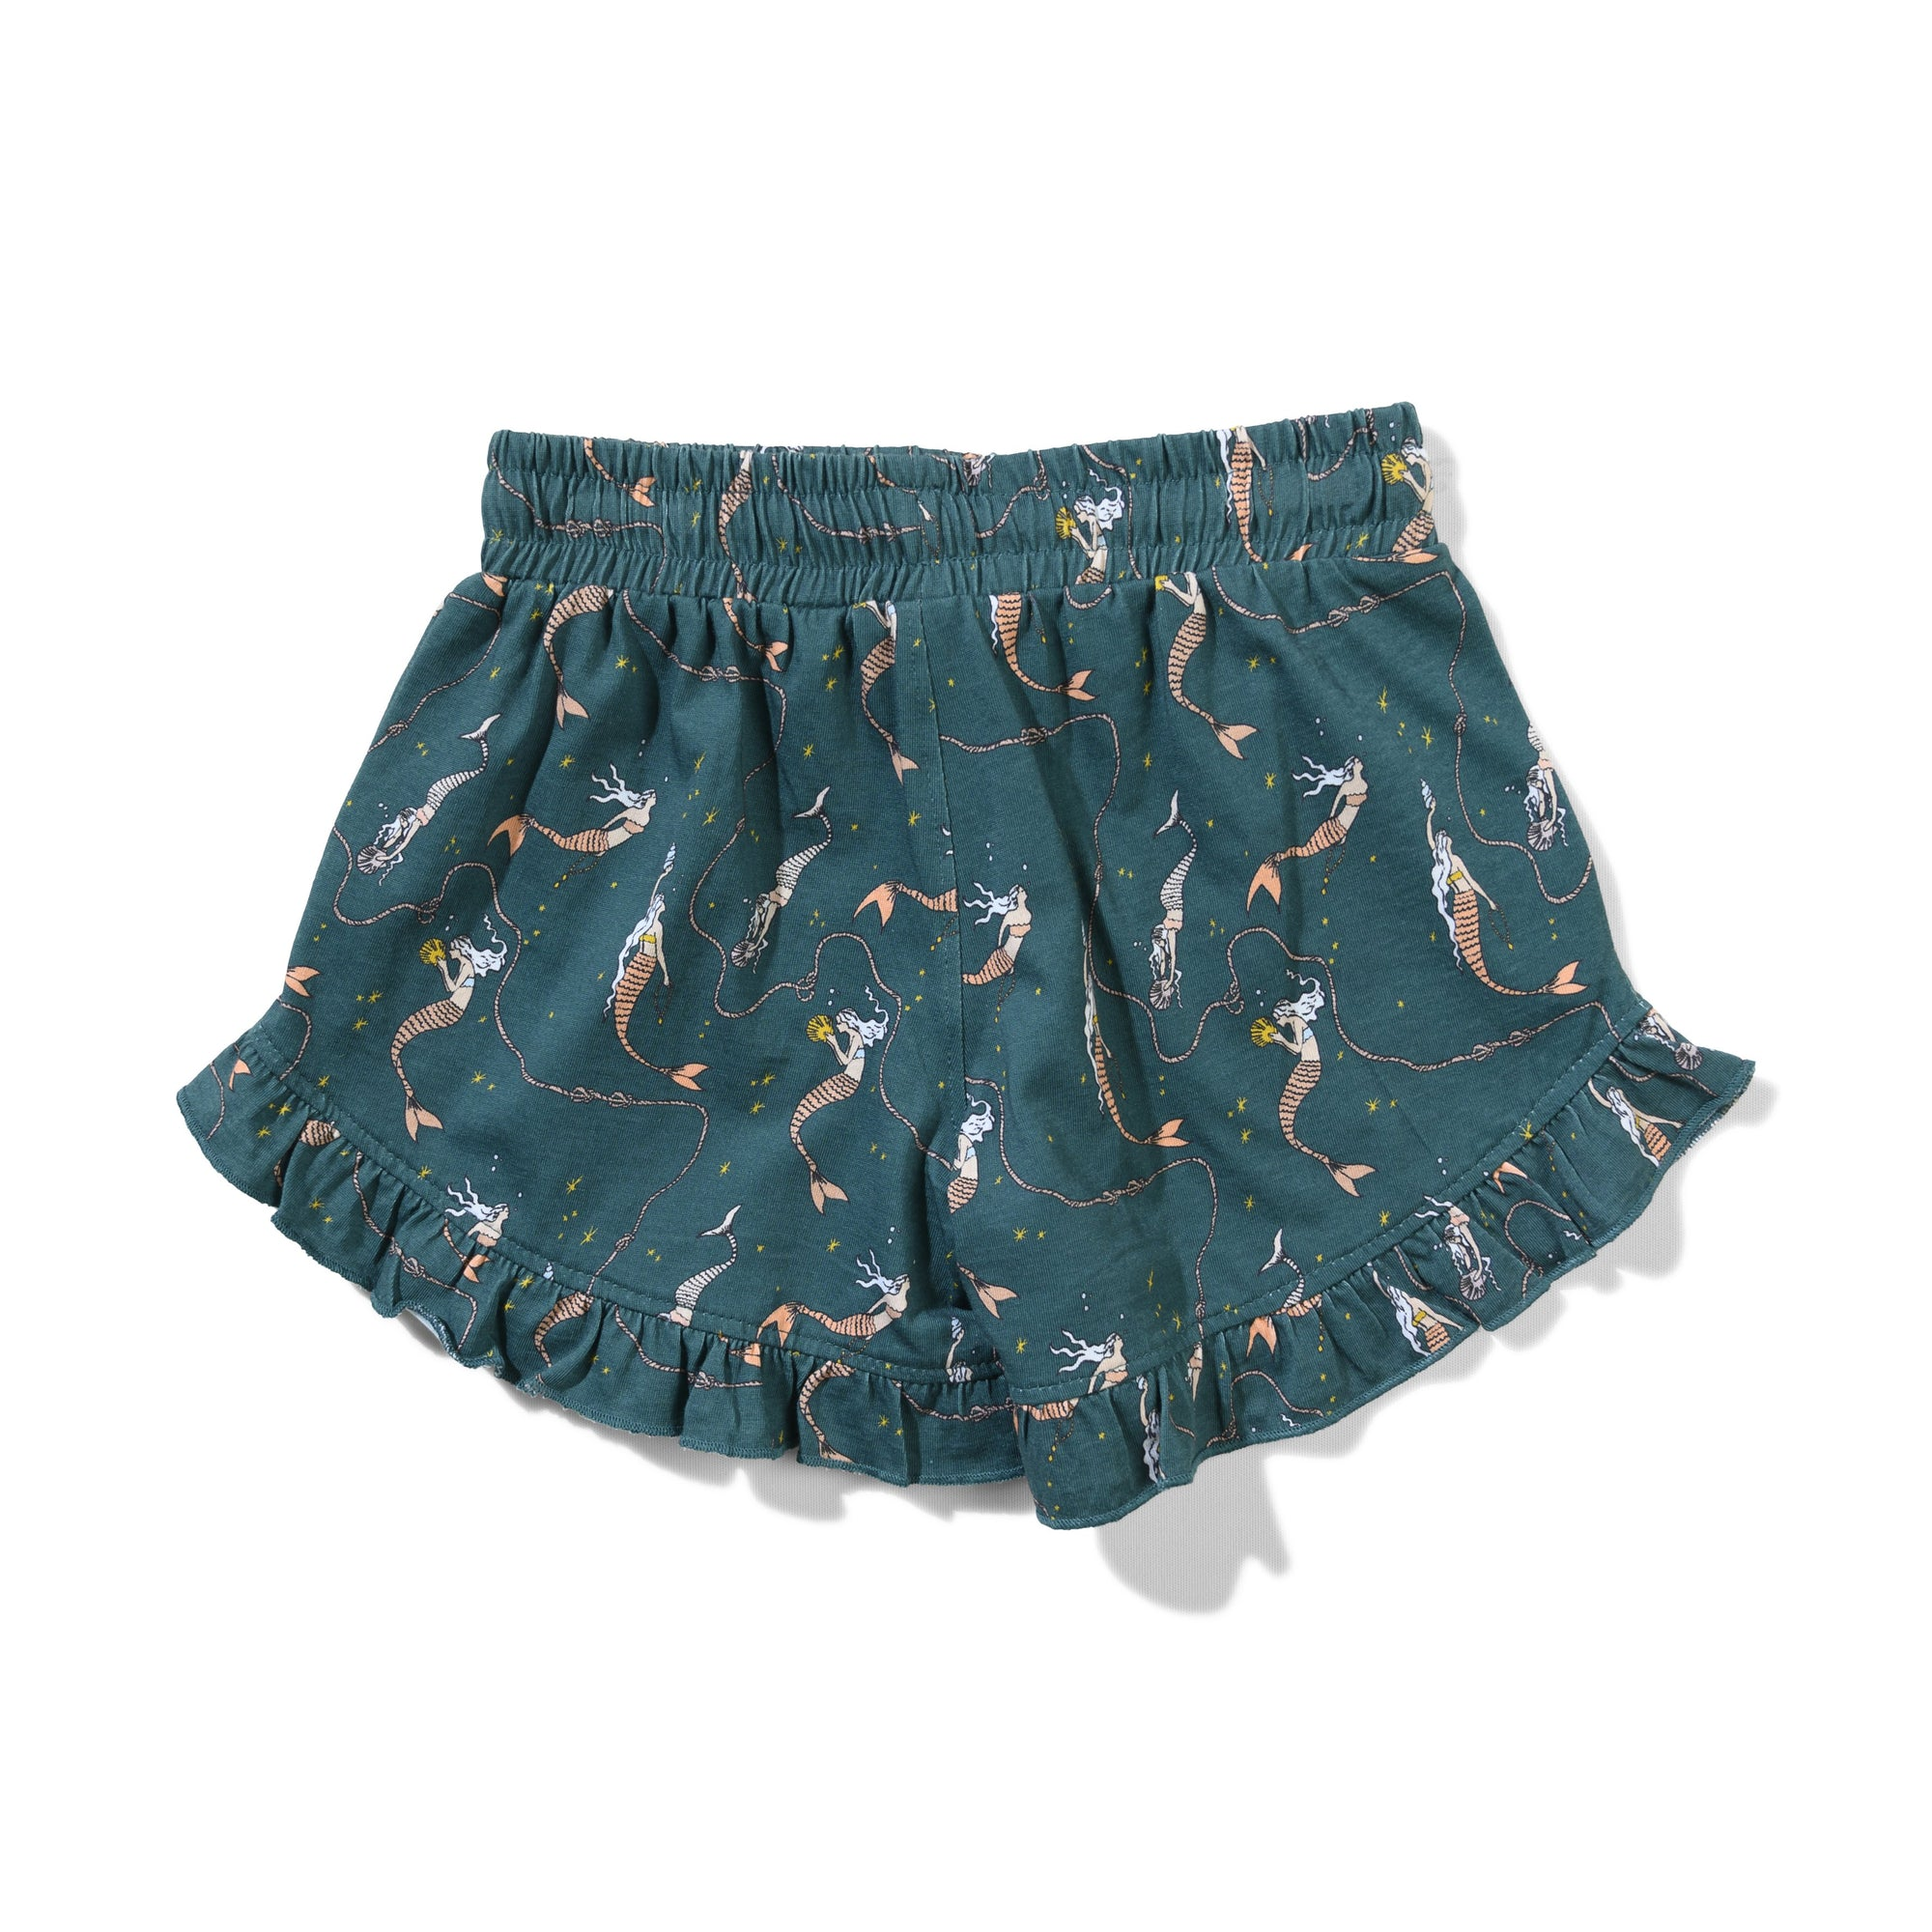 Mermaid Kalani Short GIRLS CLOTHING MUNSTERKIDS